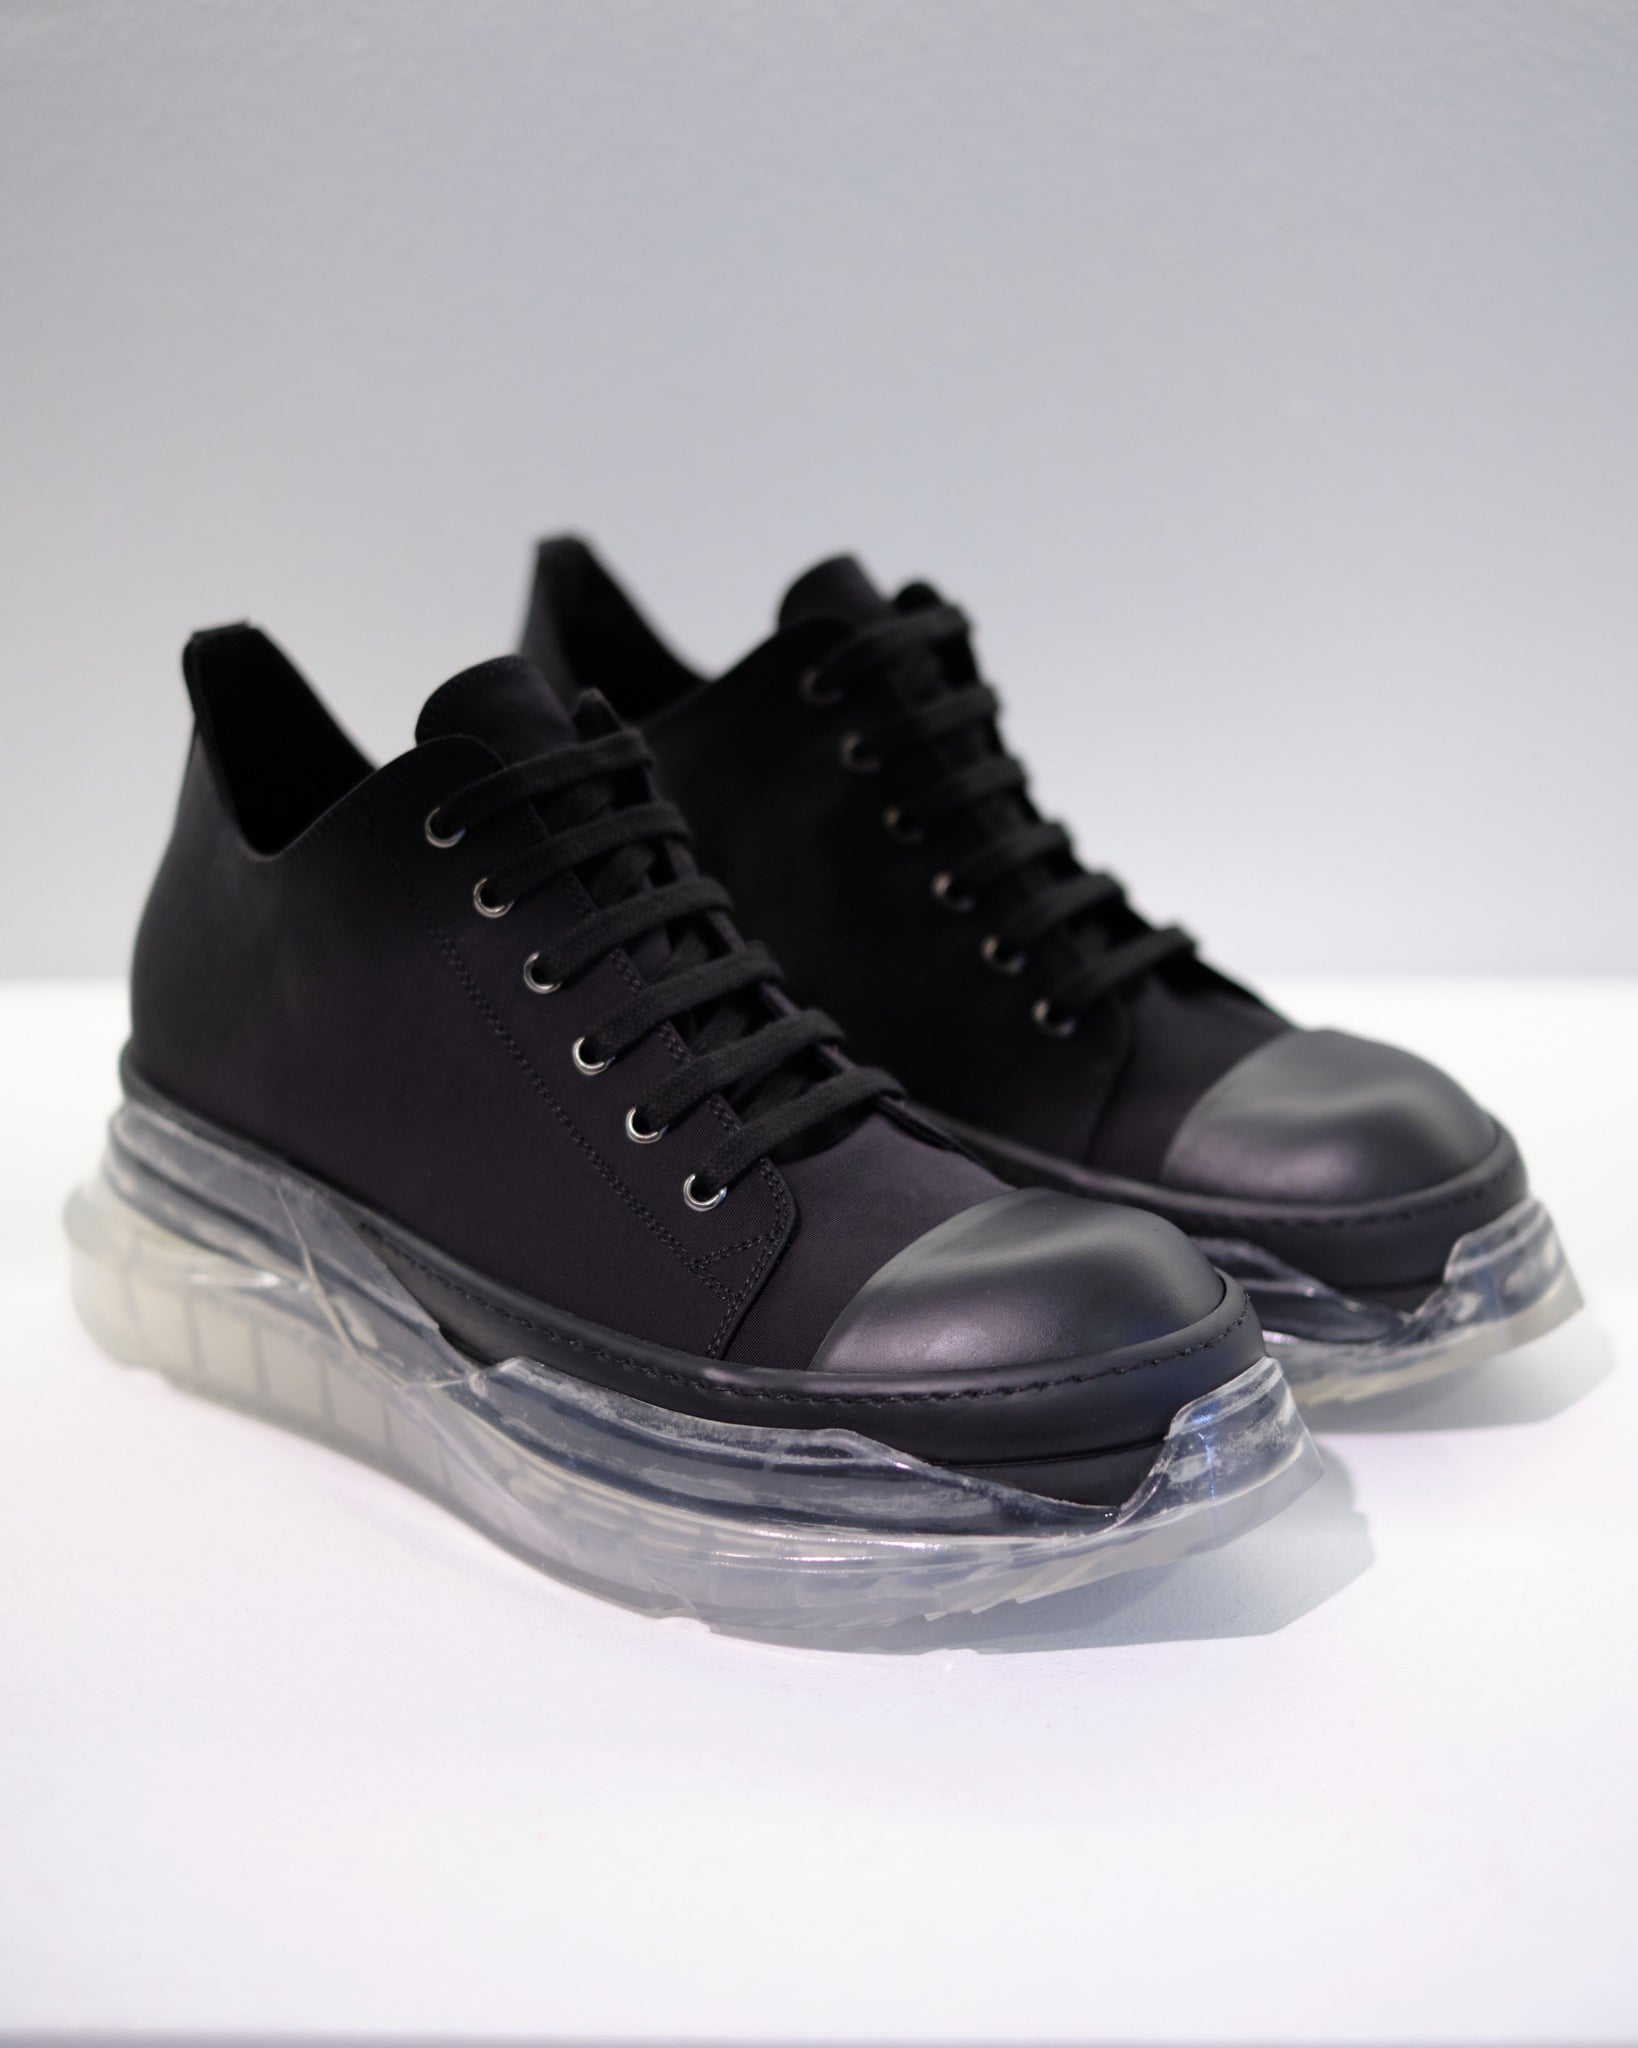 DRKSHDW ABSTRACT SNEAKER - BLACK/BLACK/CLEAR